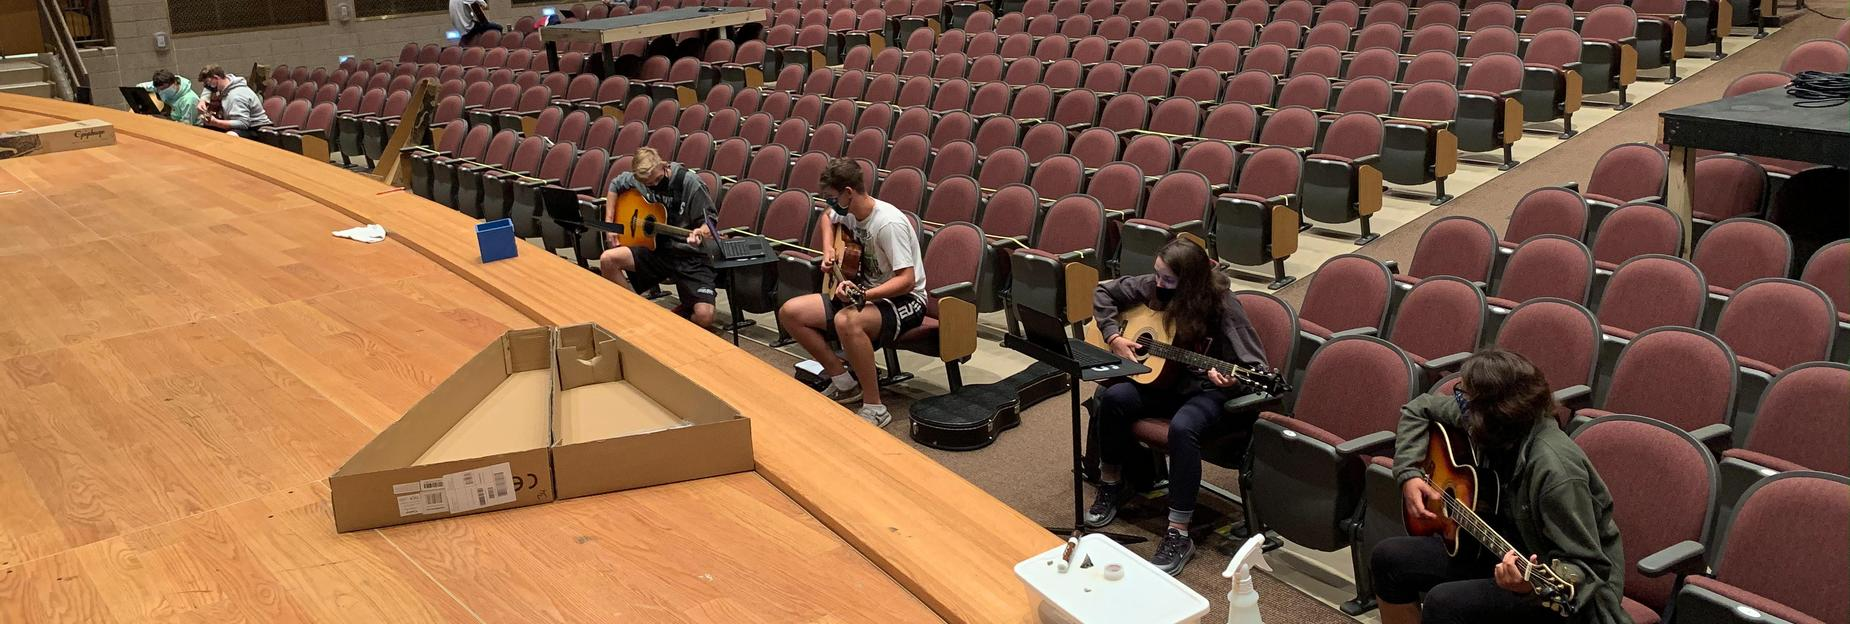 social distancing in the auditorium to learn guitar